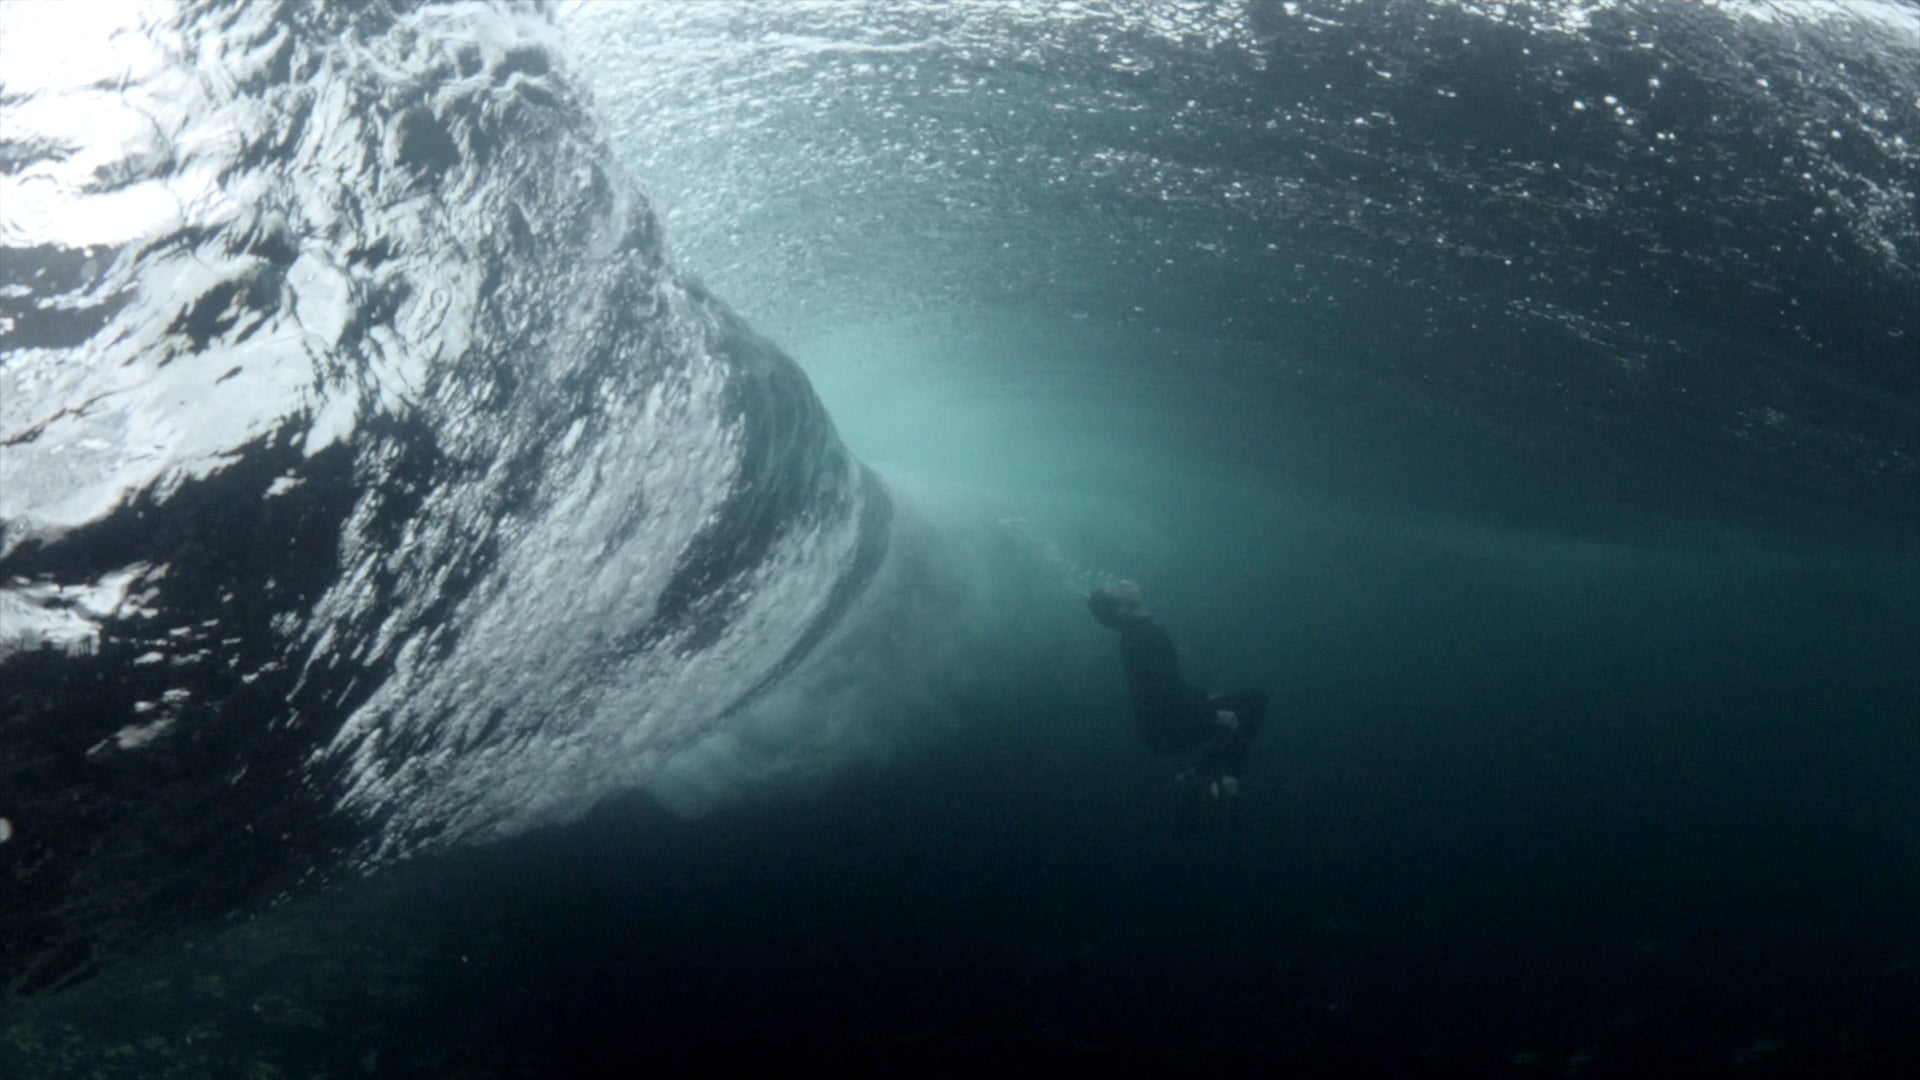 Underwater shot of a man ducking under a heavy barrelling wave in clear water